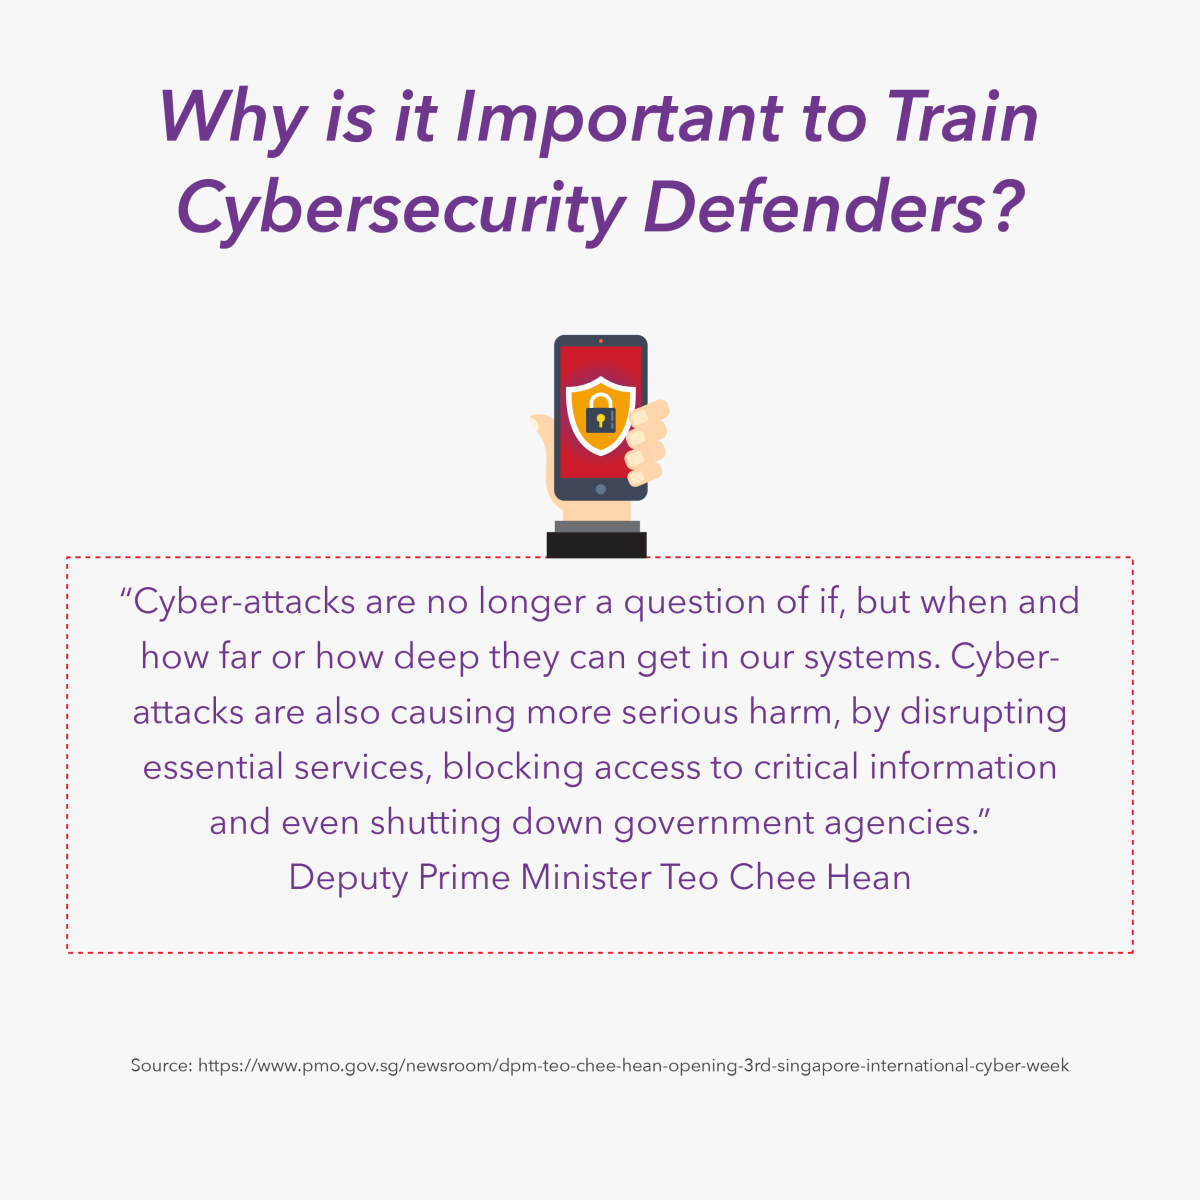 Why is it important to train cybersecurity defenders